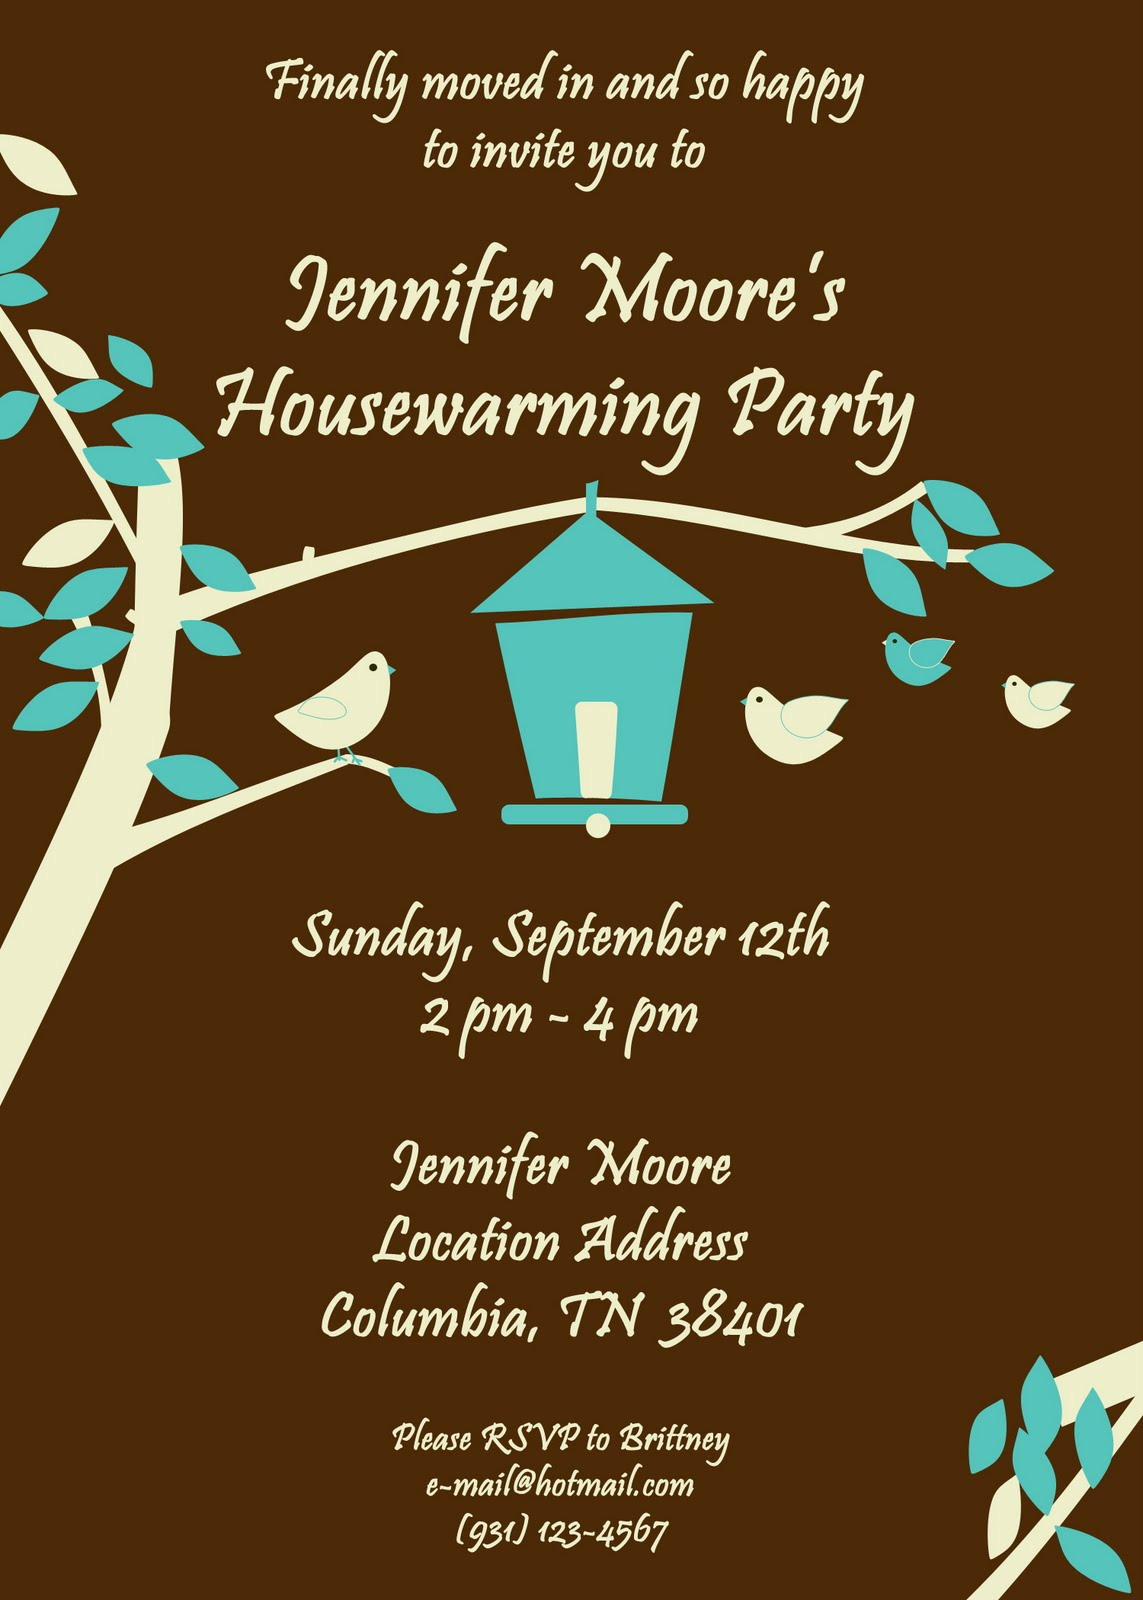 Fanci Cakes & More: Housewarming Party - Cake & Invitation